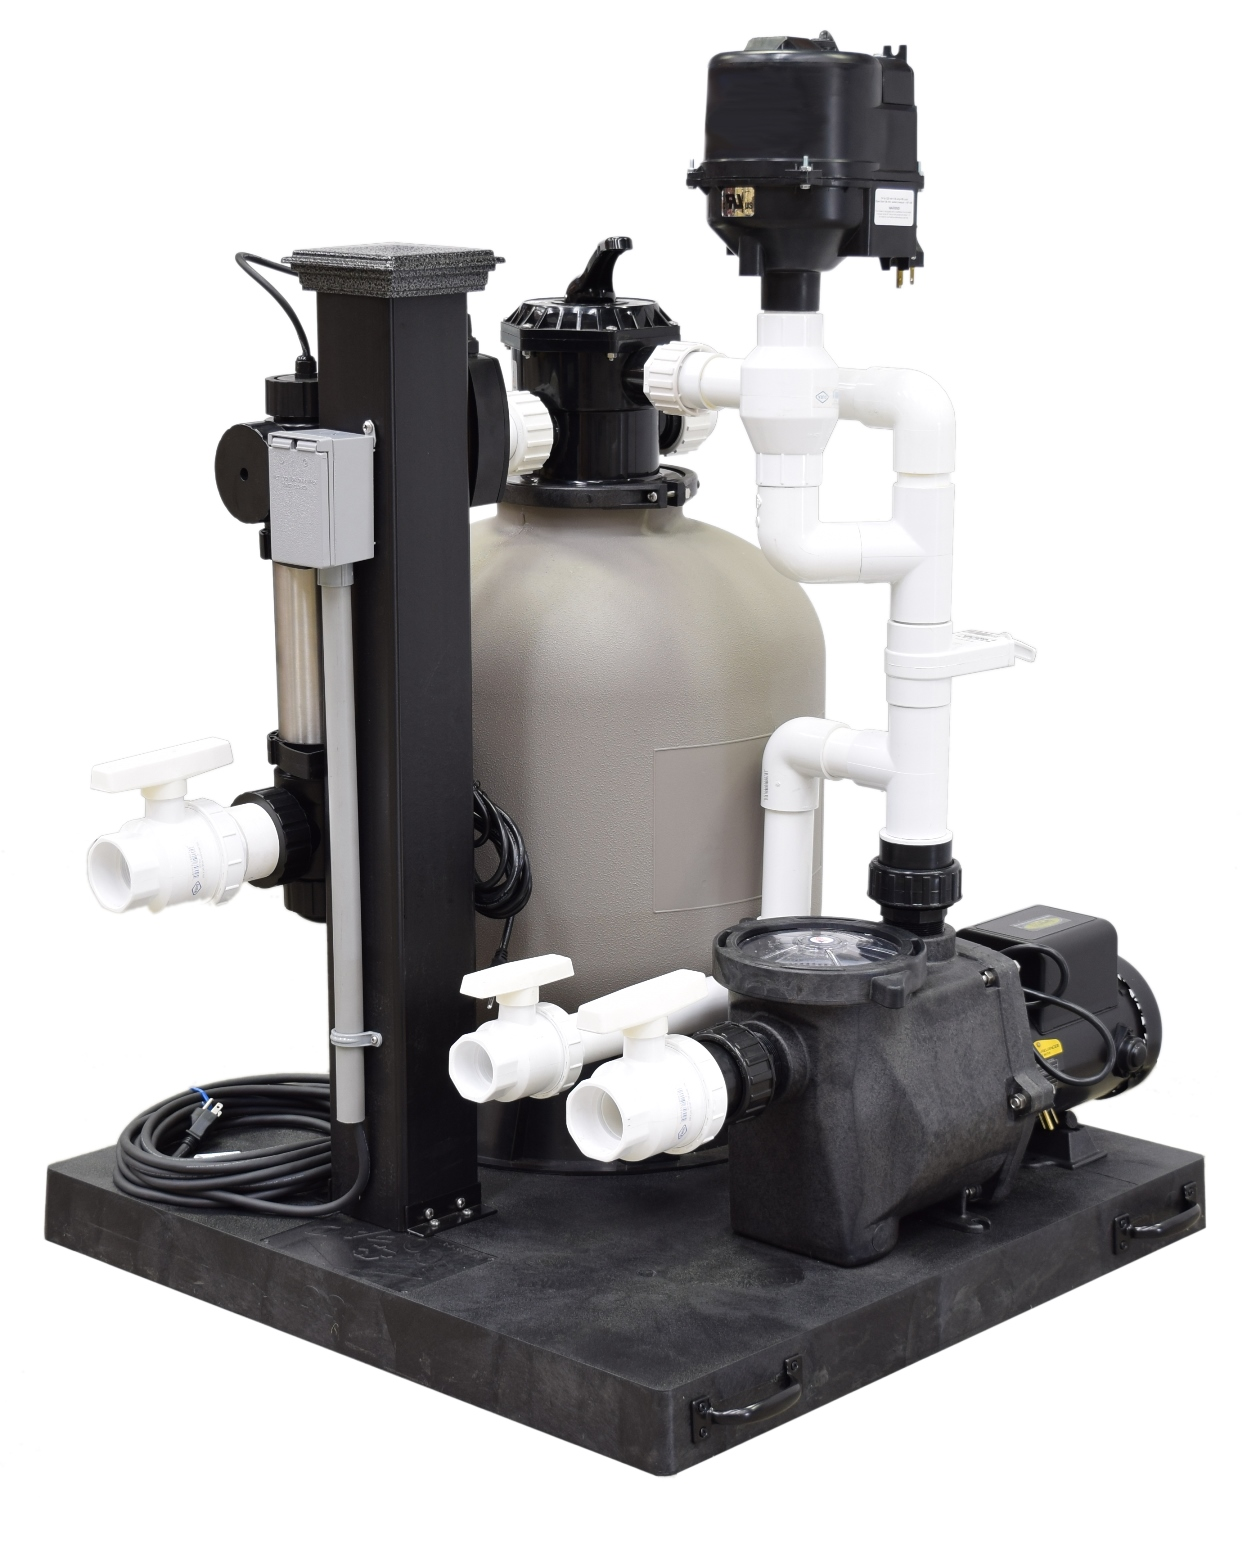 Smf3600 easypro skid mount filtration system 3600 gallon for Complete koi pond filtration systems